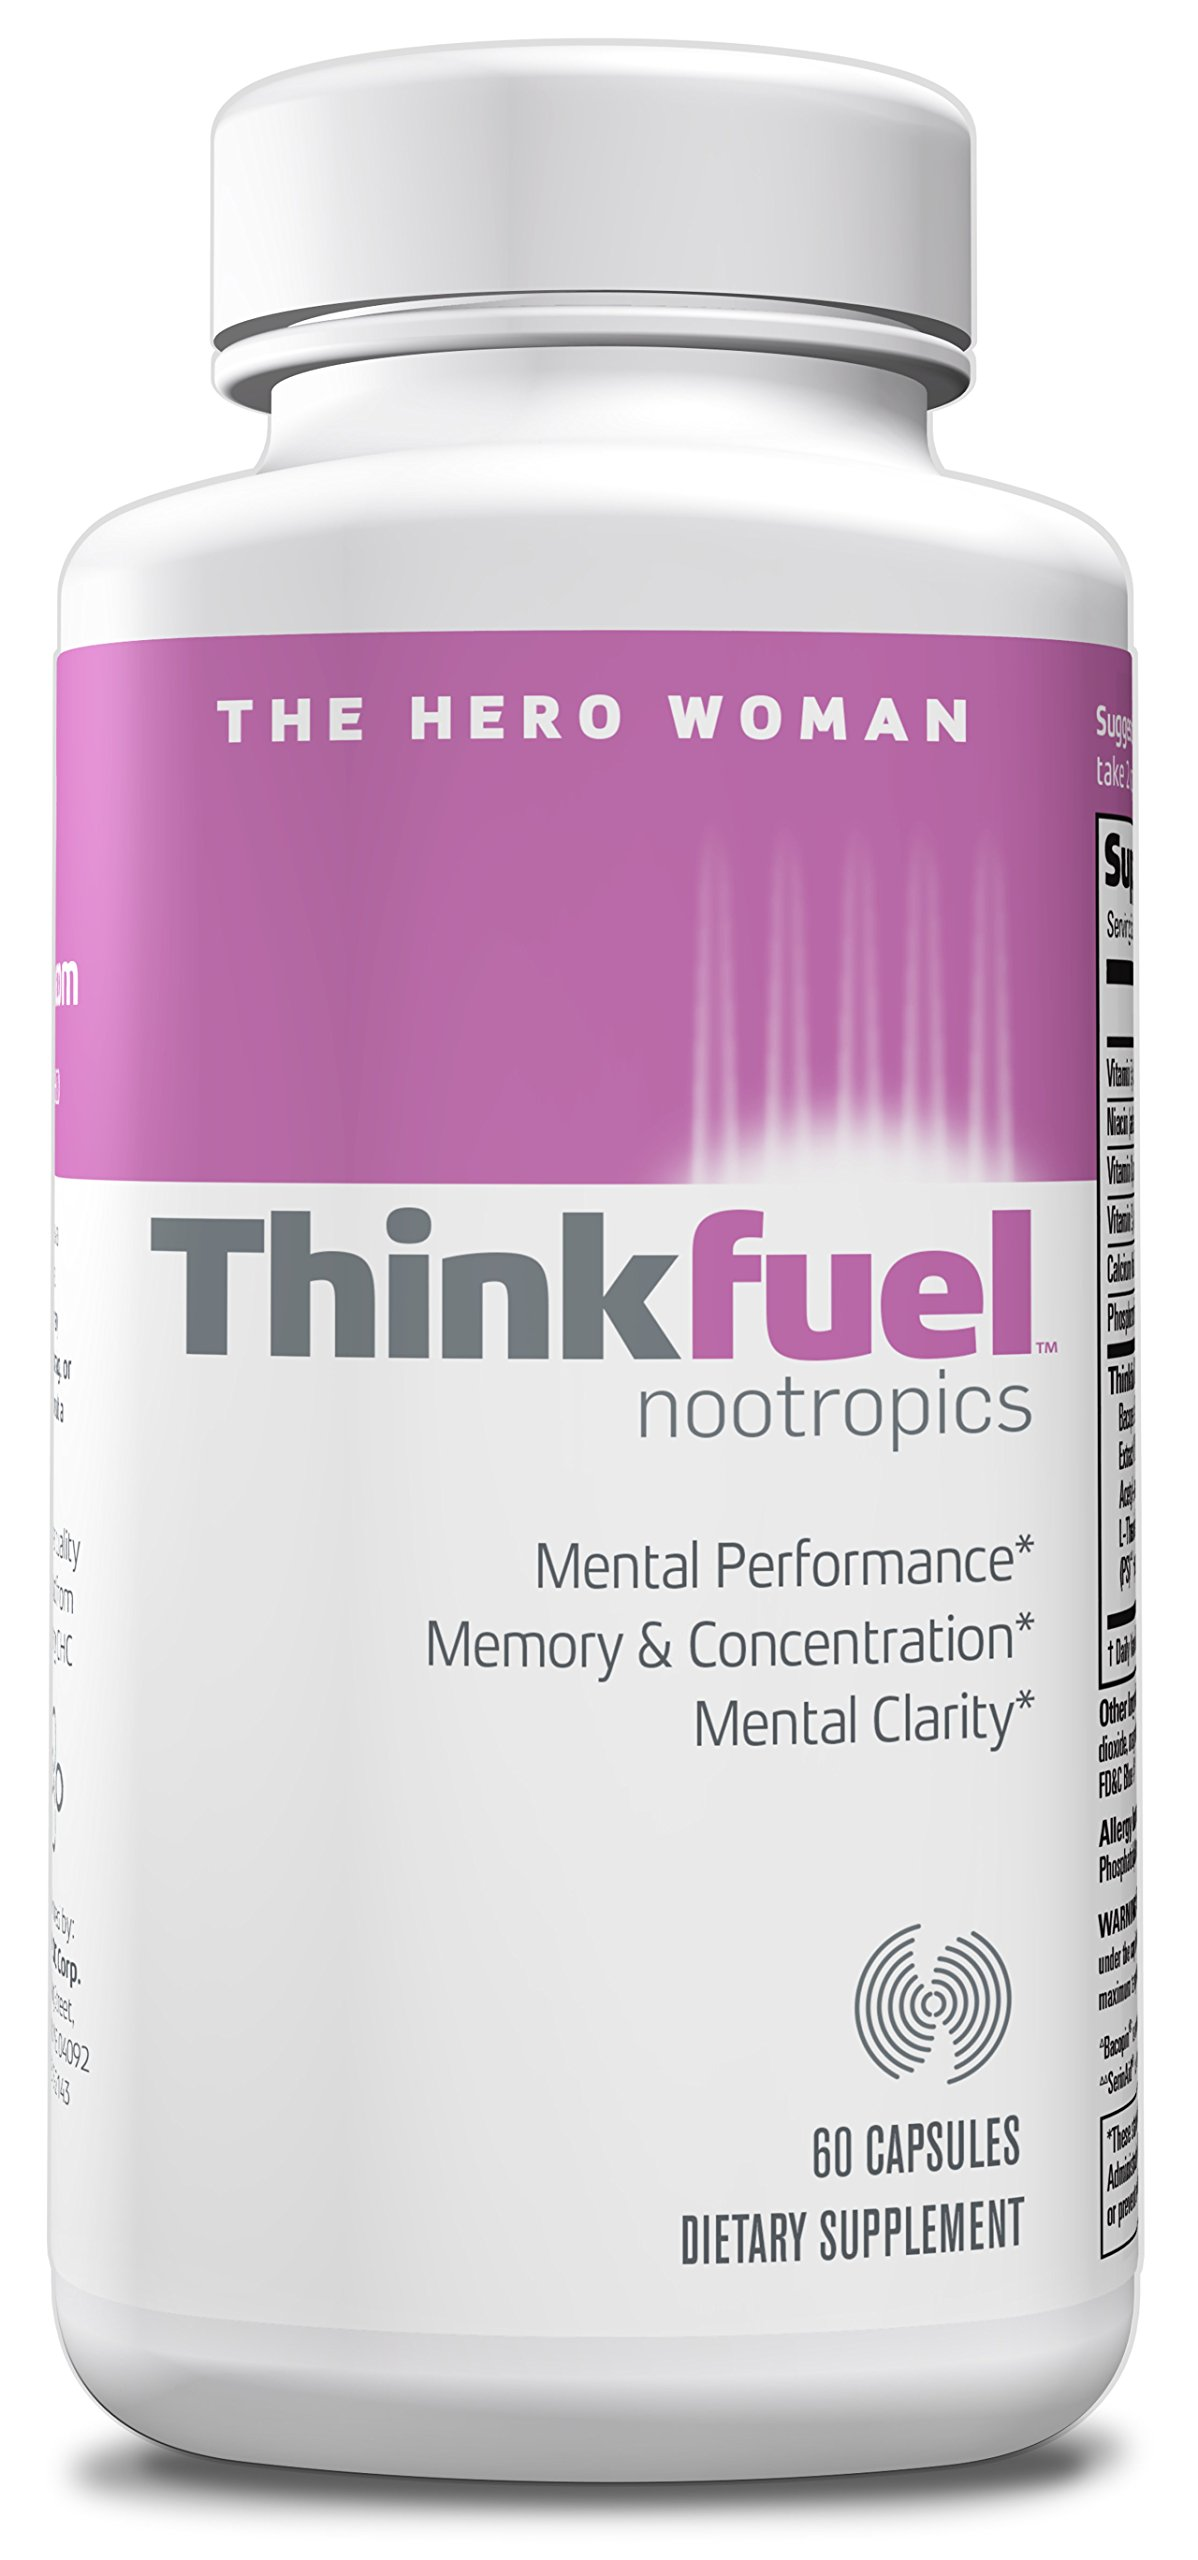 Thinkfuel For Women   Nootropic Supporting Brain Function, Energy Levels & Mental Clarity w/ DMAE, Ginkgo Biloba, L- Theanine, B Vitamins (B2, B3, B6 & B12), and Caffeine. (60 Capsules)